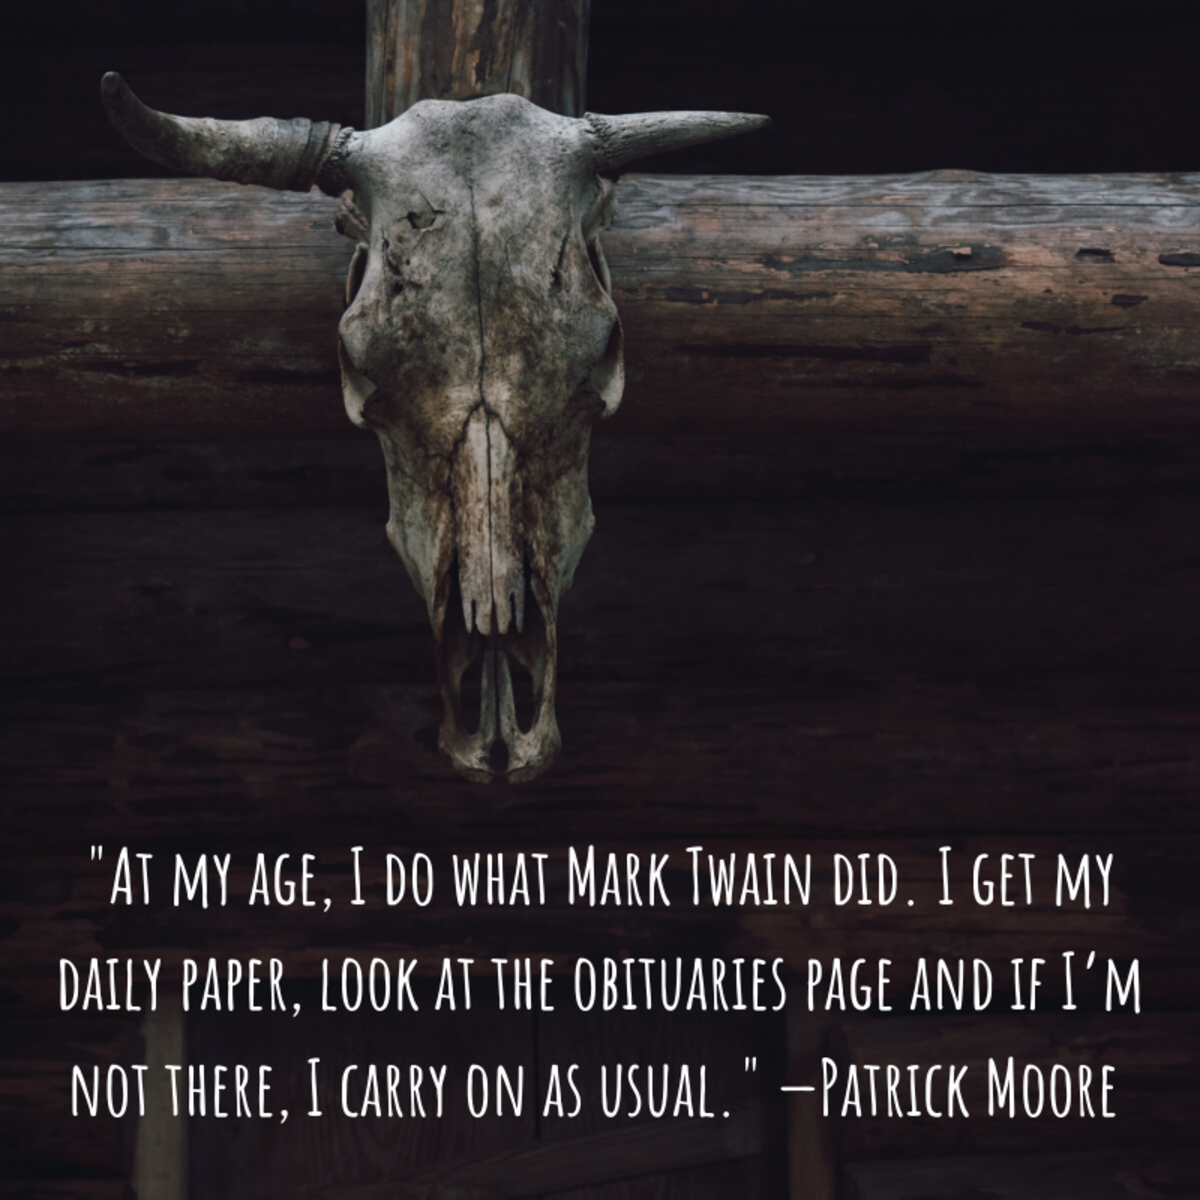 """At my age, I do what Mark Twain did. I get my daily paper, look at the obituaries page and if I'm not there, I carry on as usual."" —Patrick Moore (astronomer)"